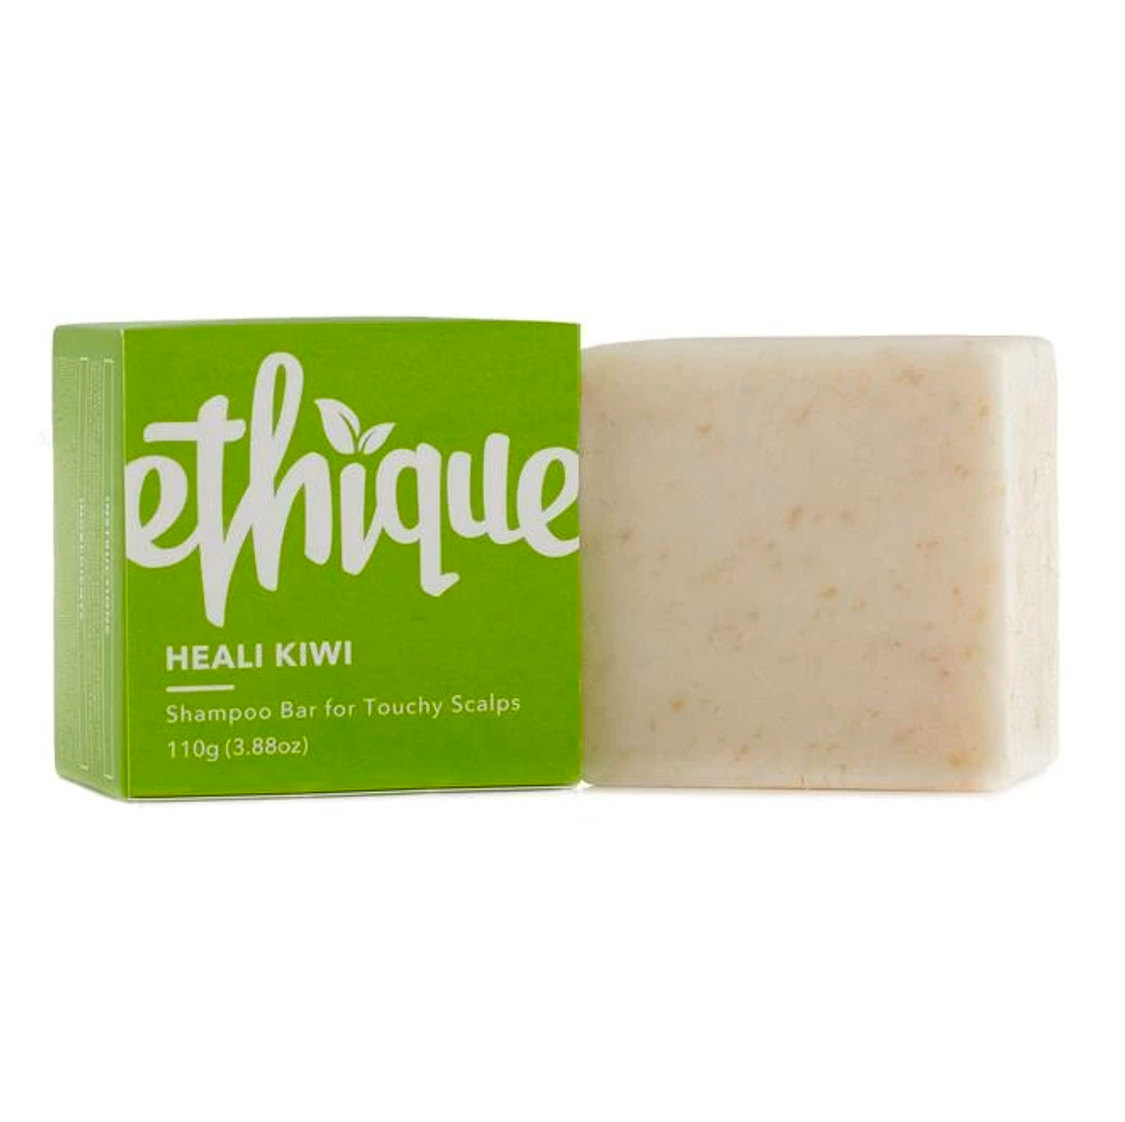 Eco-Friendly Solid Shampoo Bar, Heali Kiwi, 3.88 oz (110g)